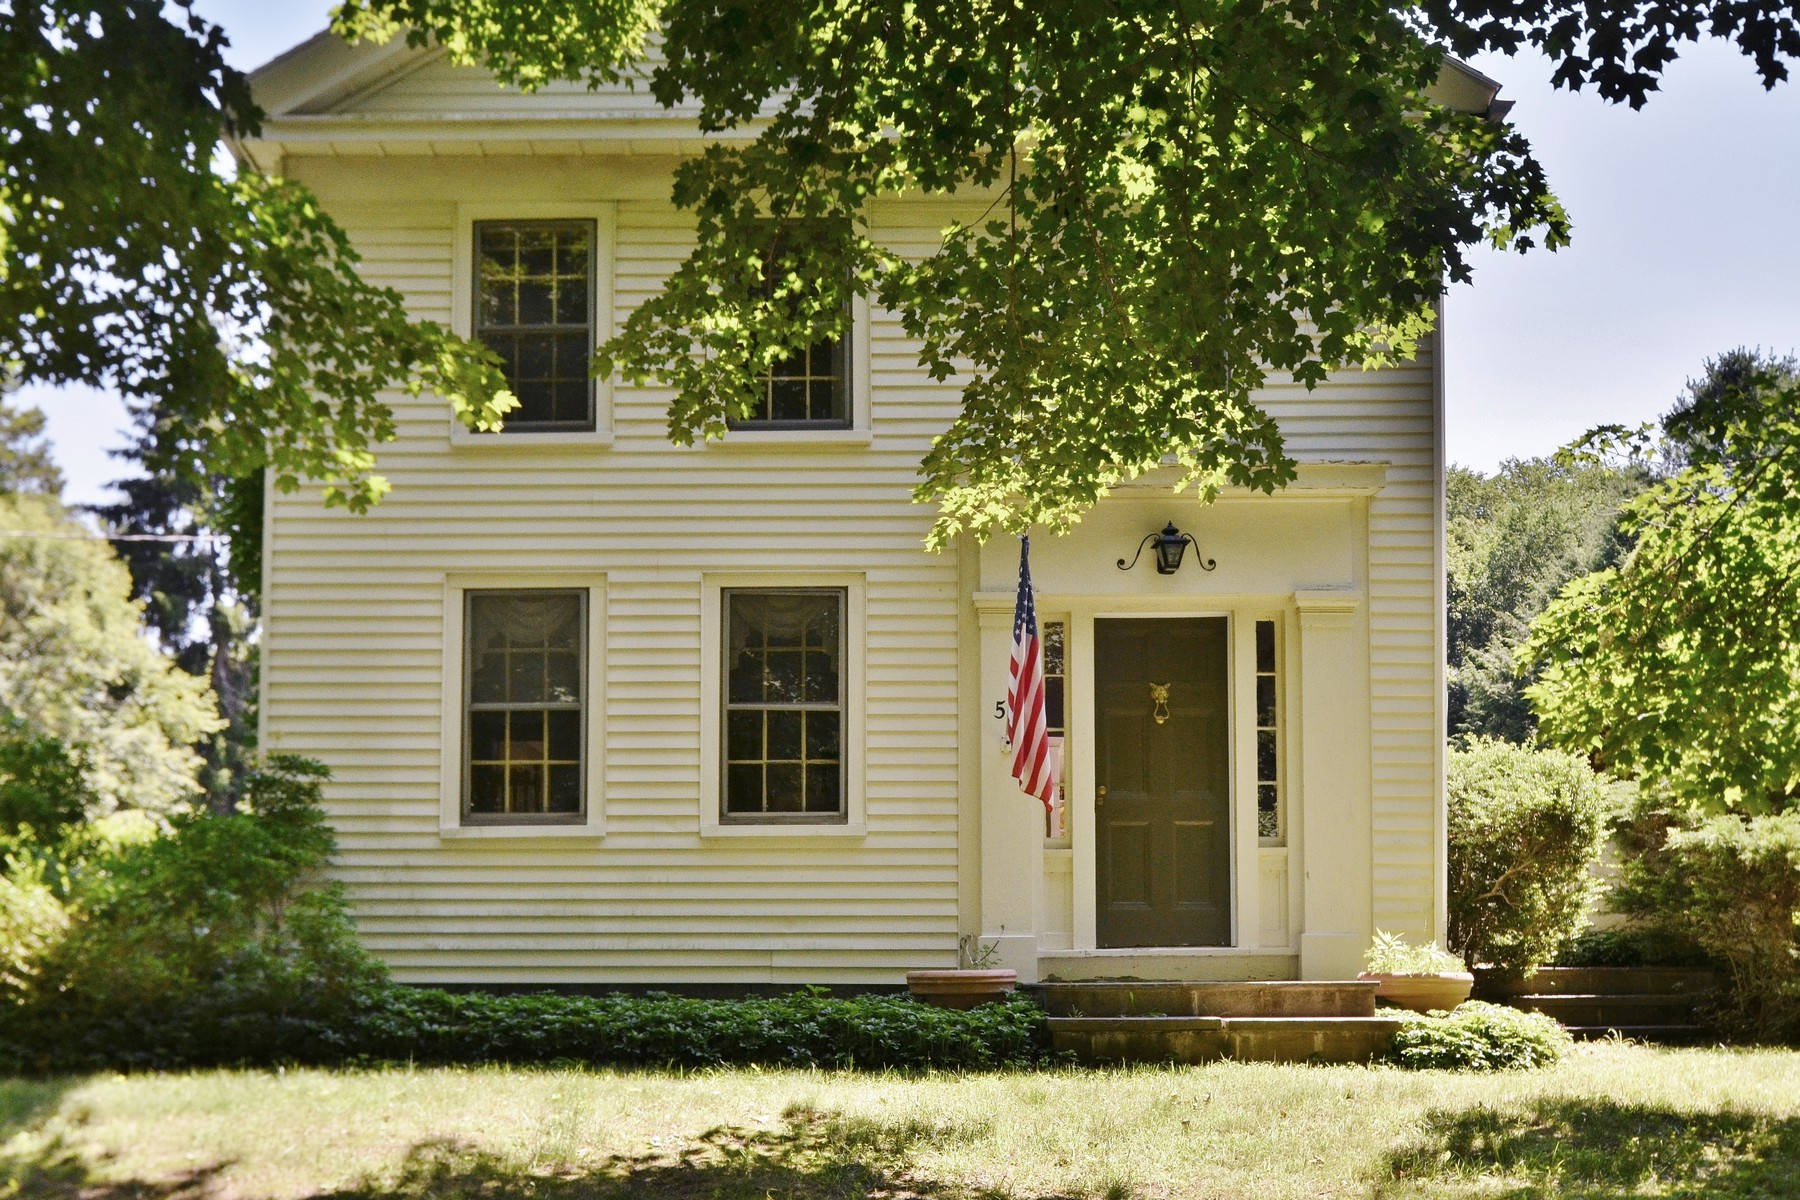 Property For Sale at Charming Antique Light Filled Home